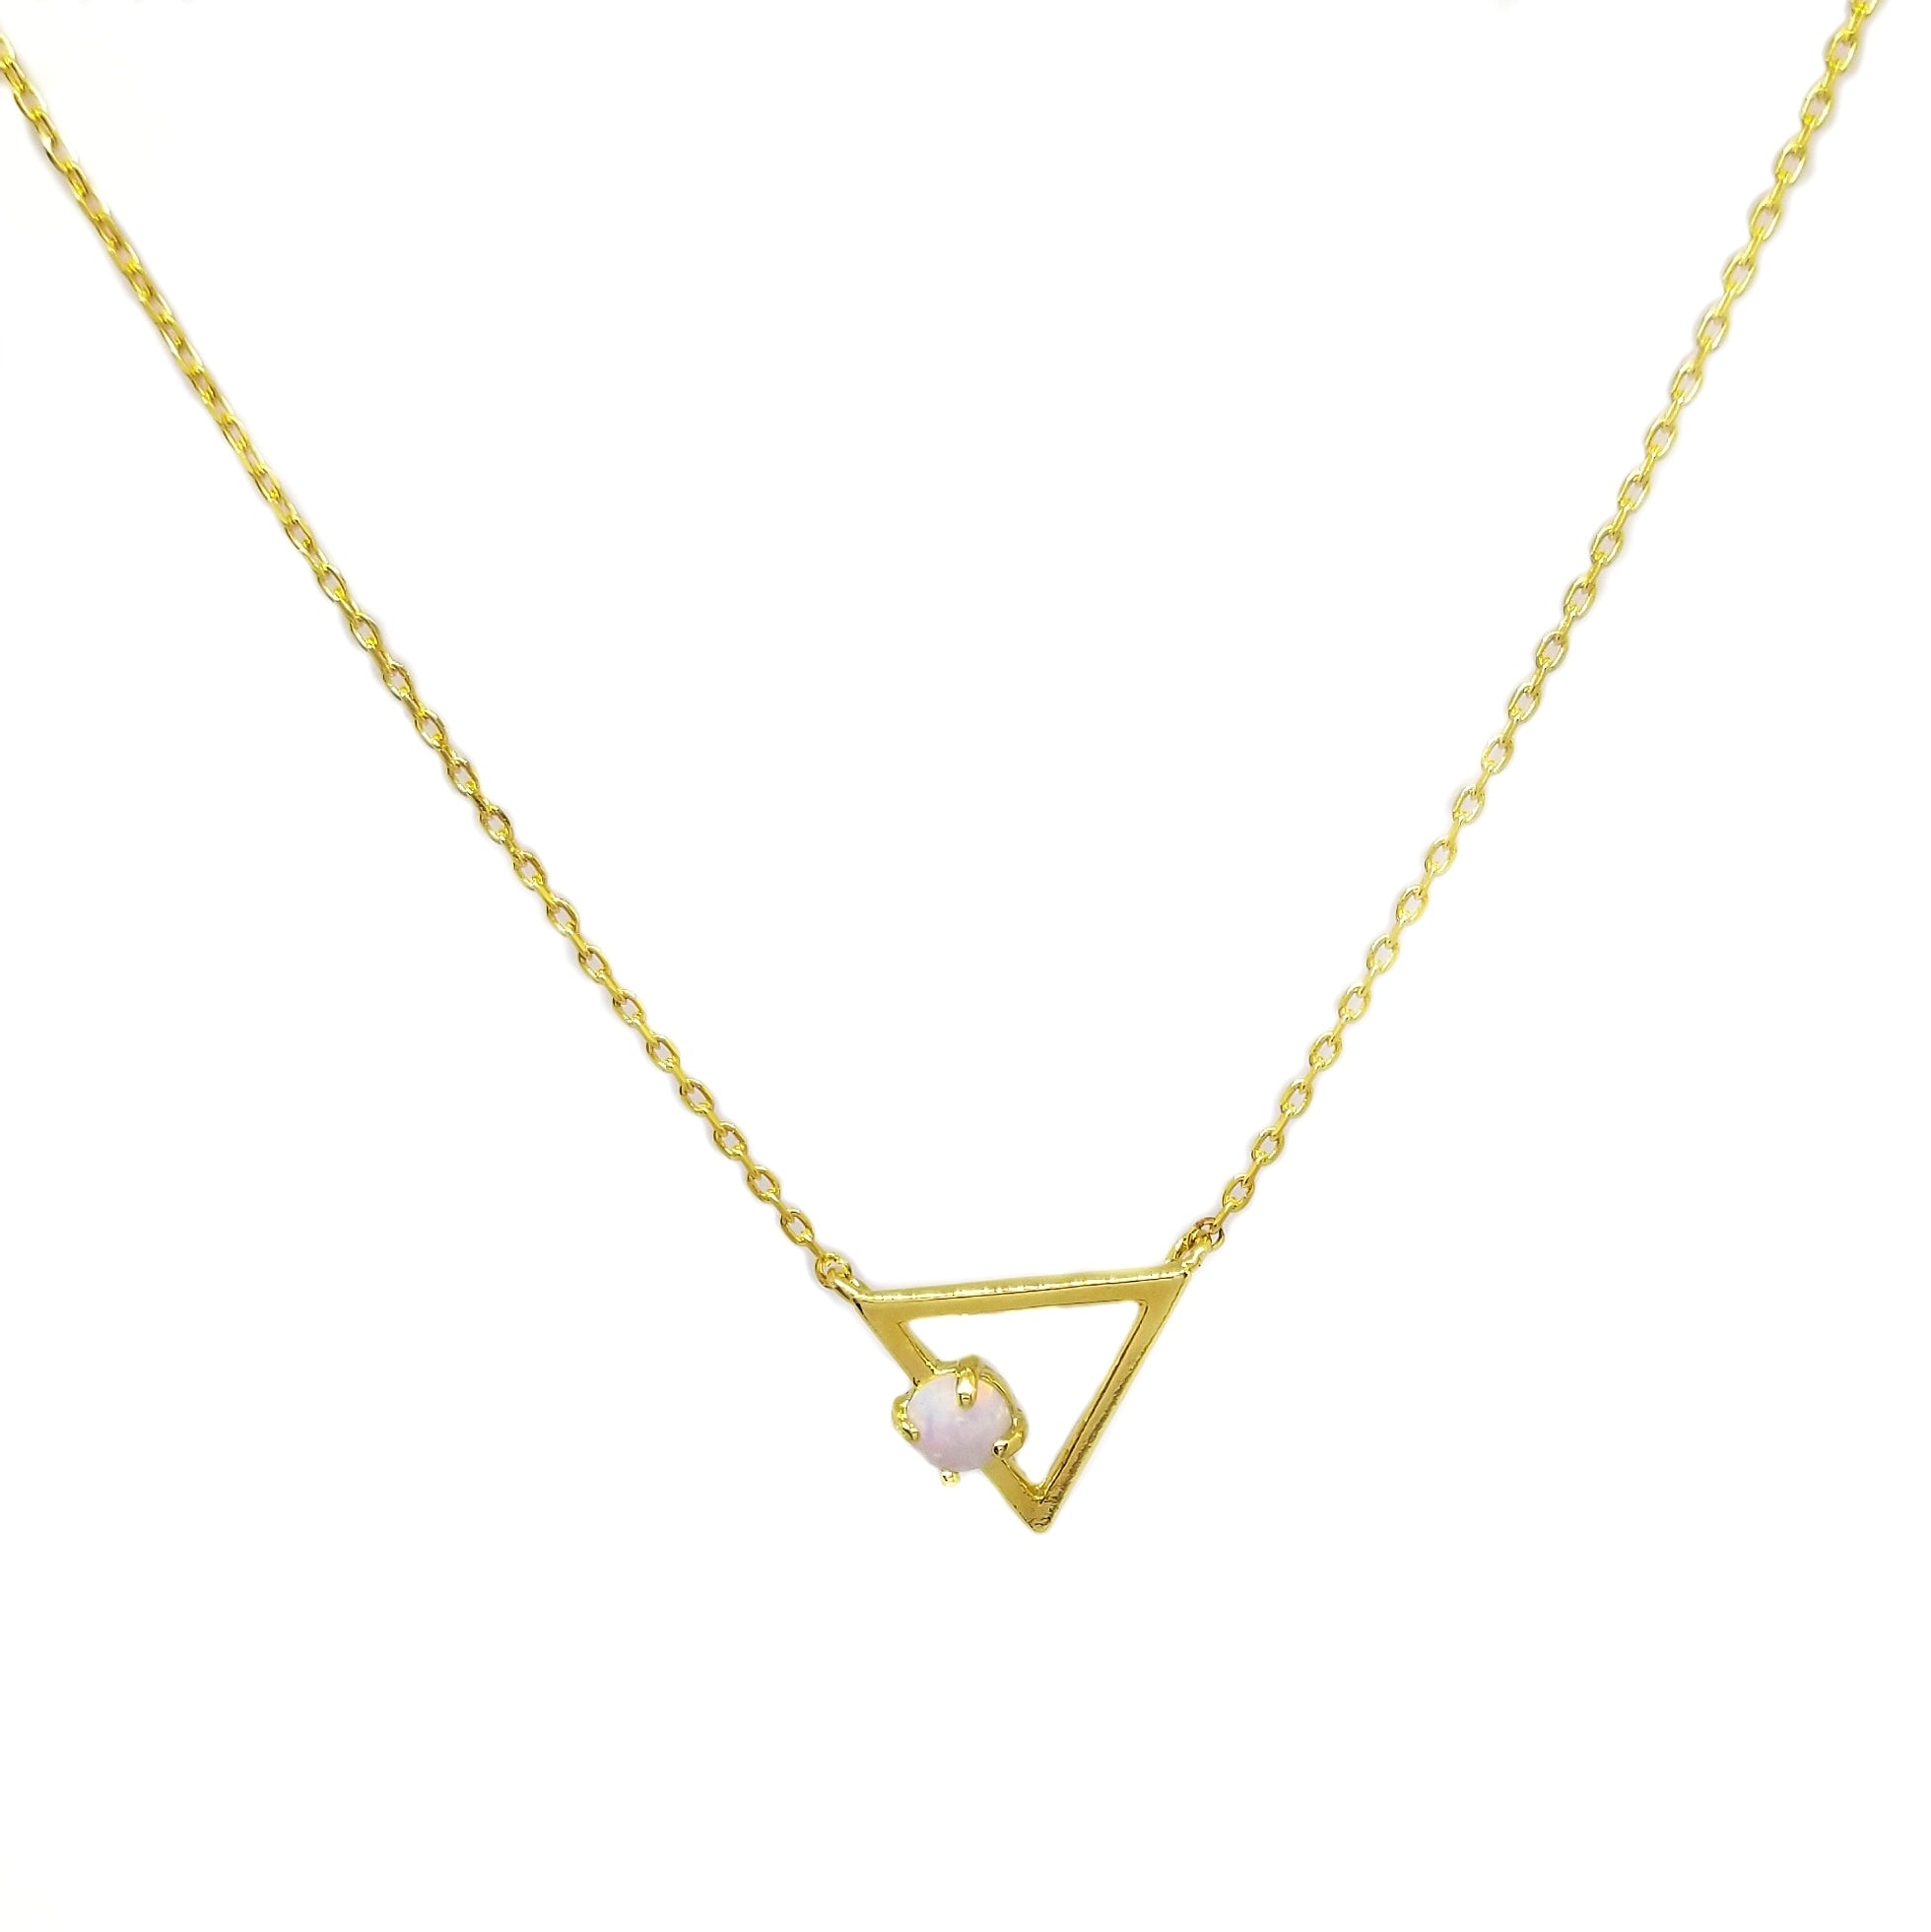 Chain and pendant set sterling silver with gold plated triangle opal